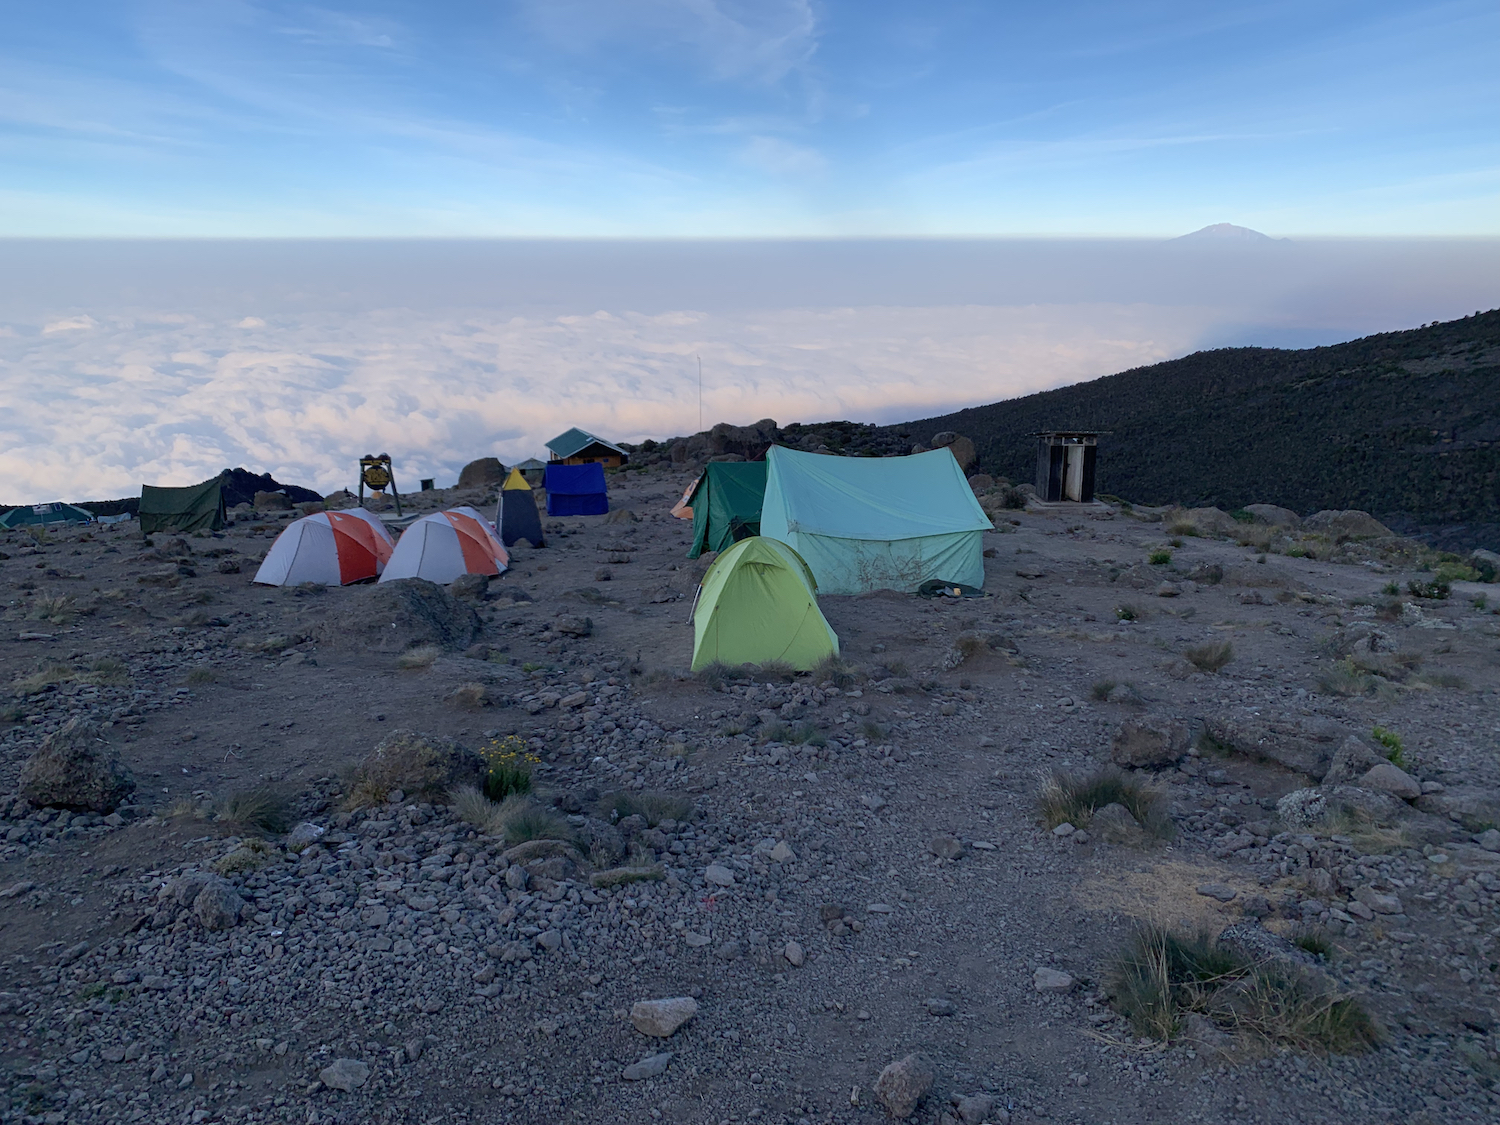 A blanket of clouds swaddled the mountain. Meru is visible on the horizon to the right. Photograph by Bryan, a member of our Kandoo Adventures team.